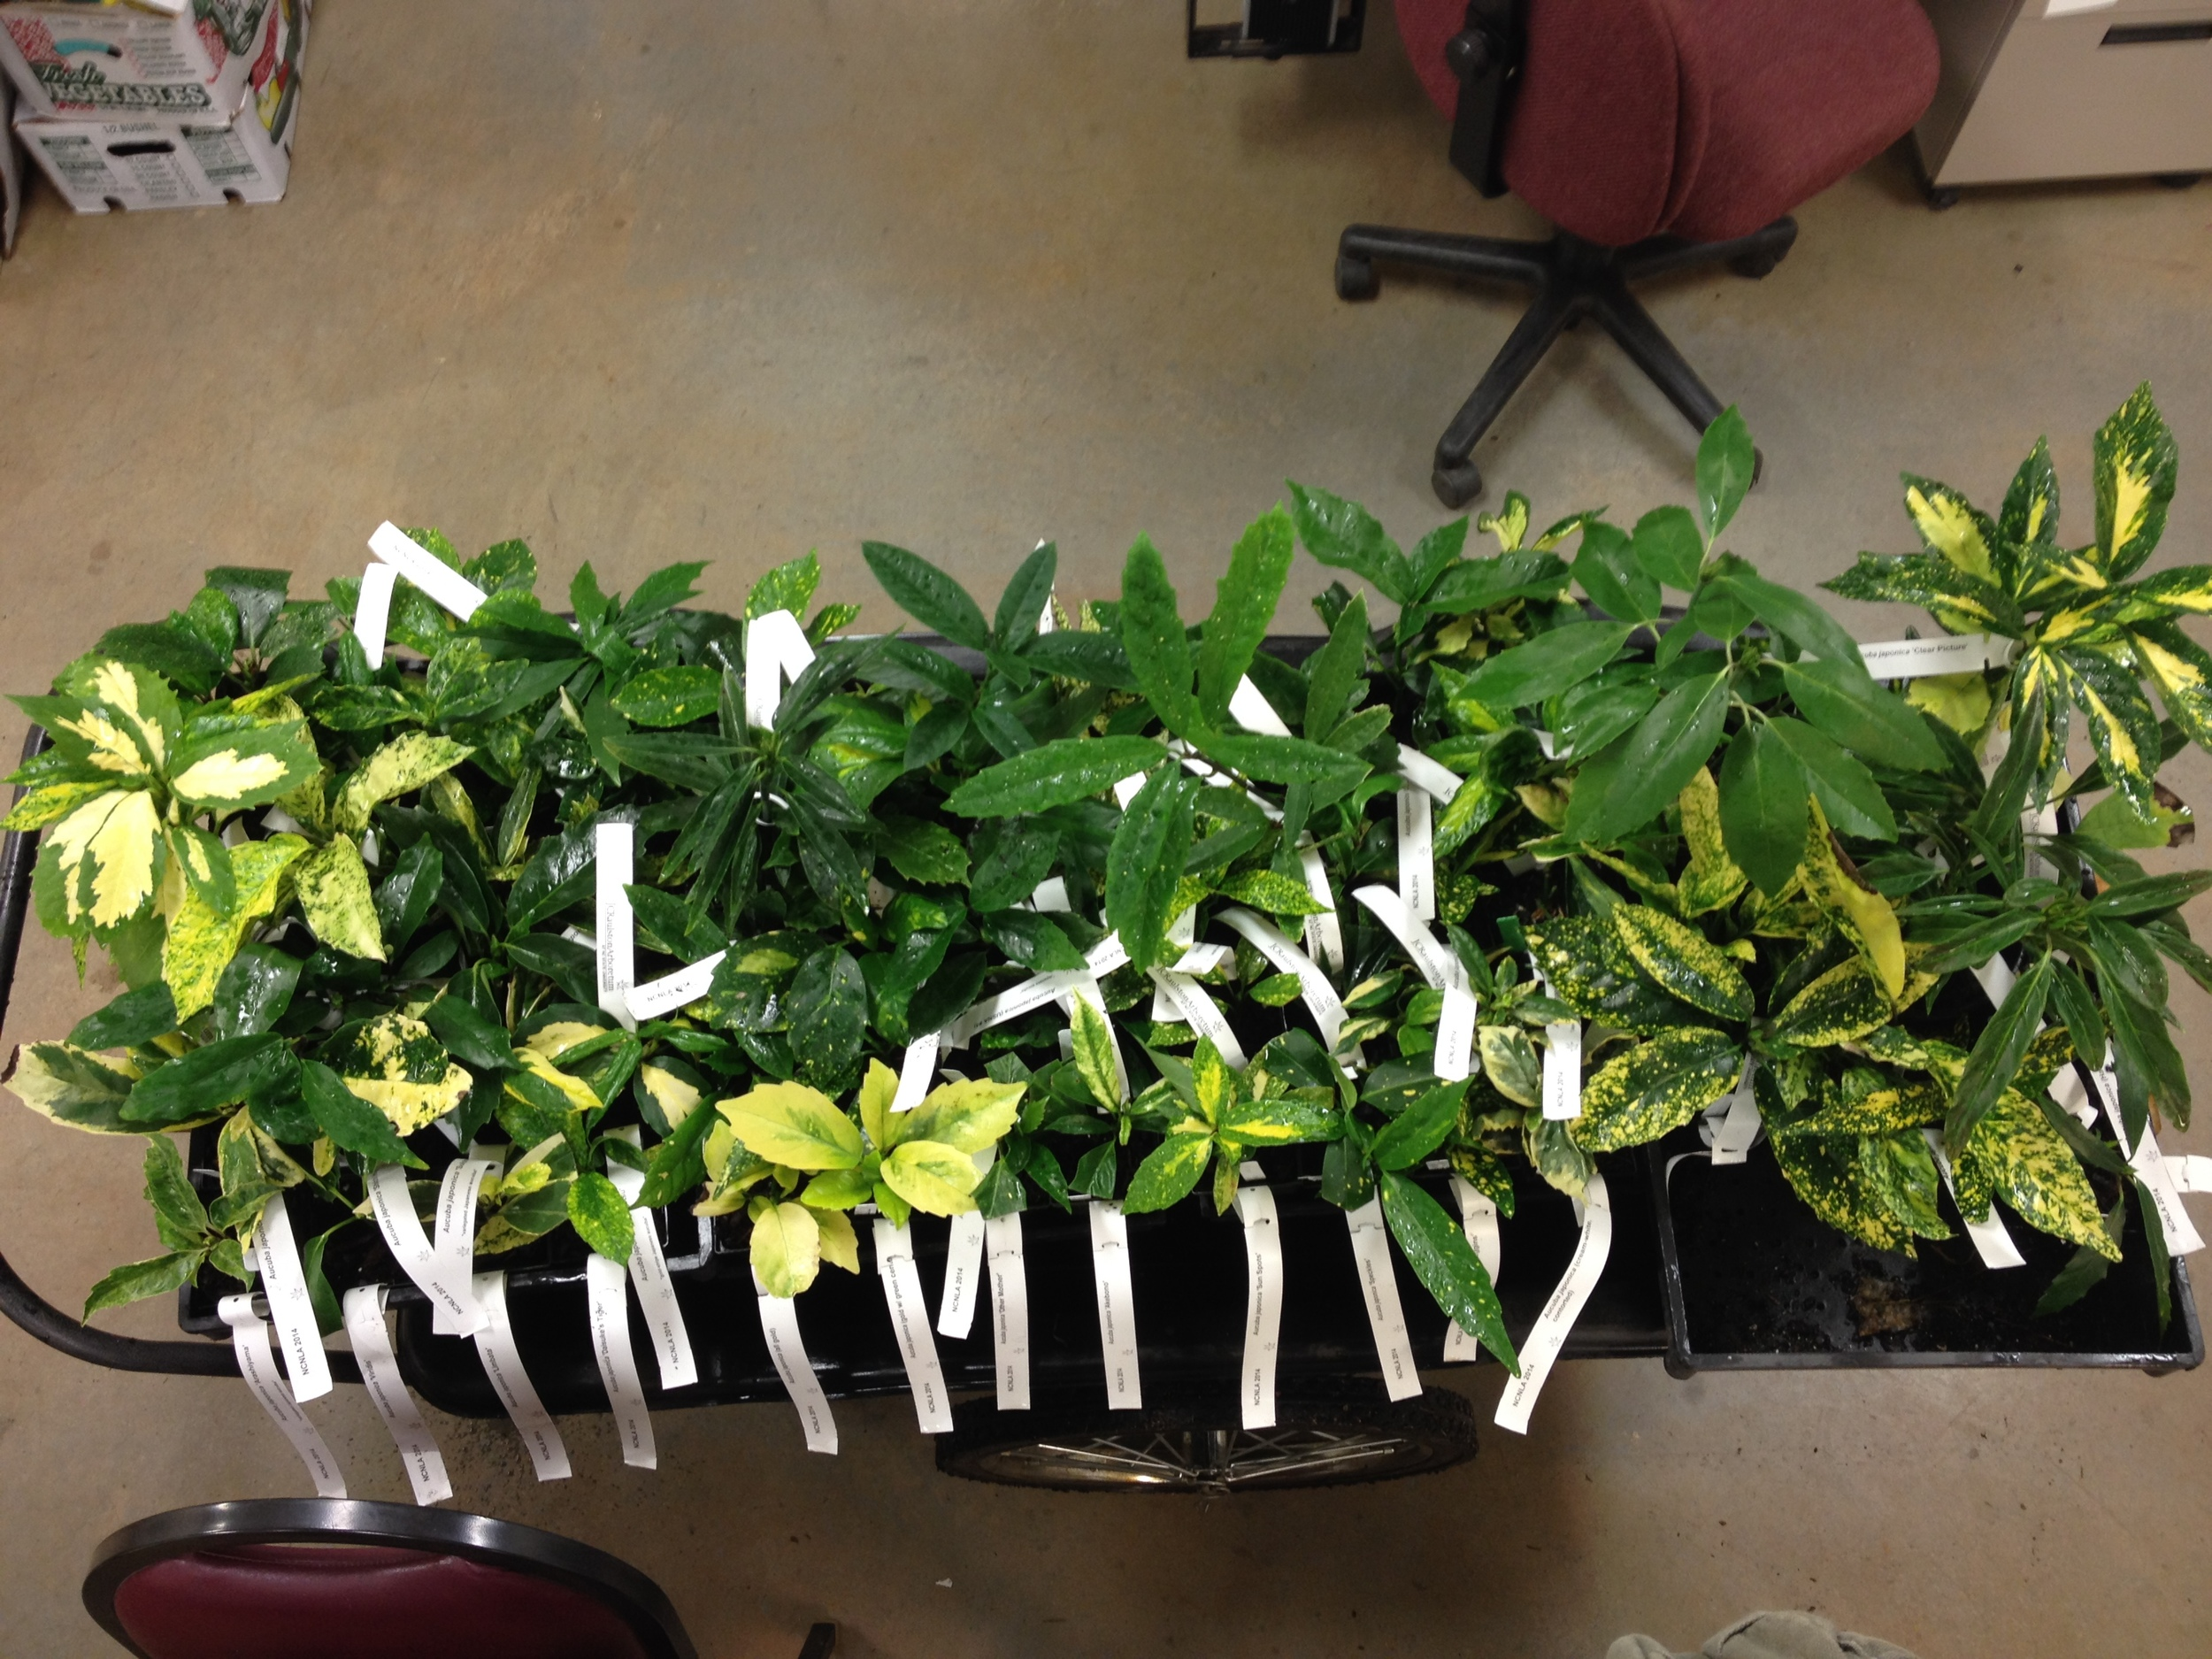 A selection of almost 80 Aucuba from the JC Raulston Arboretum to be displayed at the NCNLA Winter Trade Show.